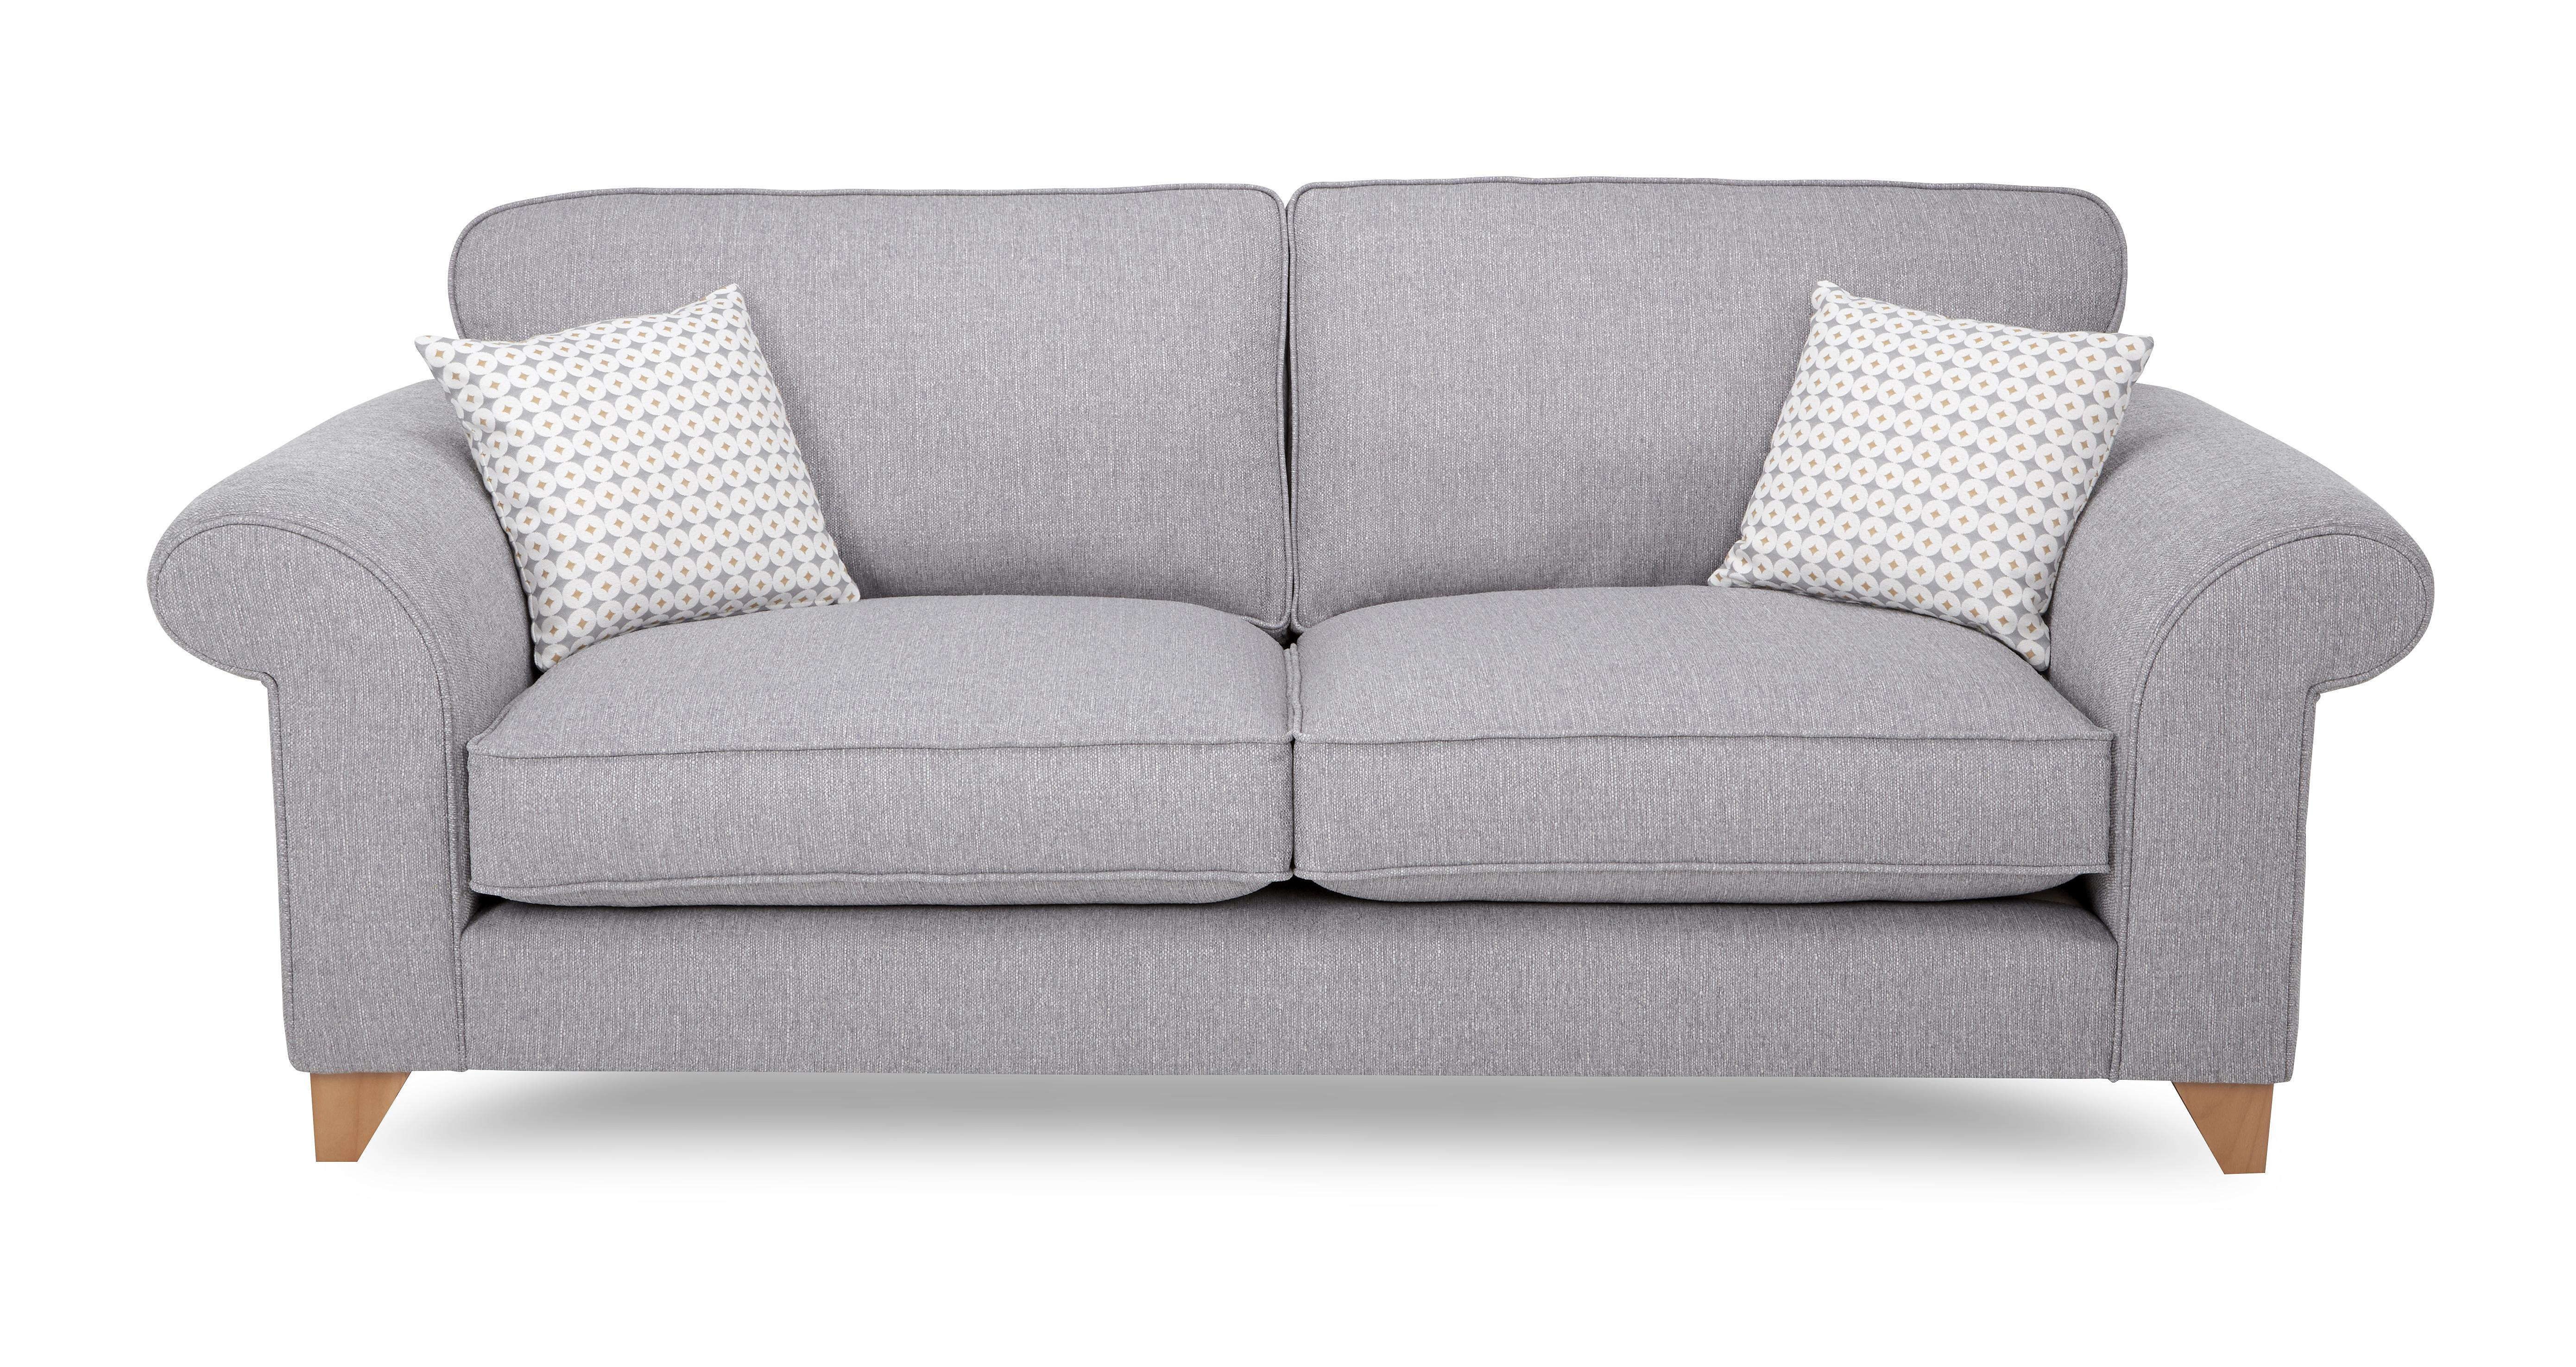 Angelic 3 Seater Sofa   DFS